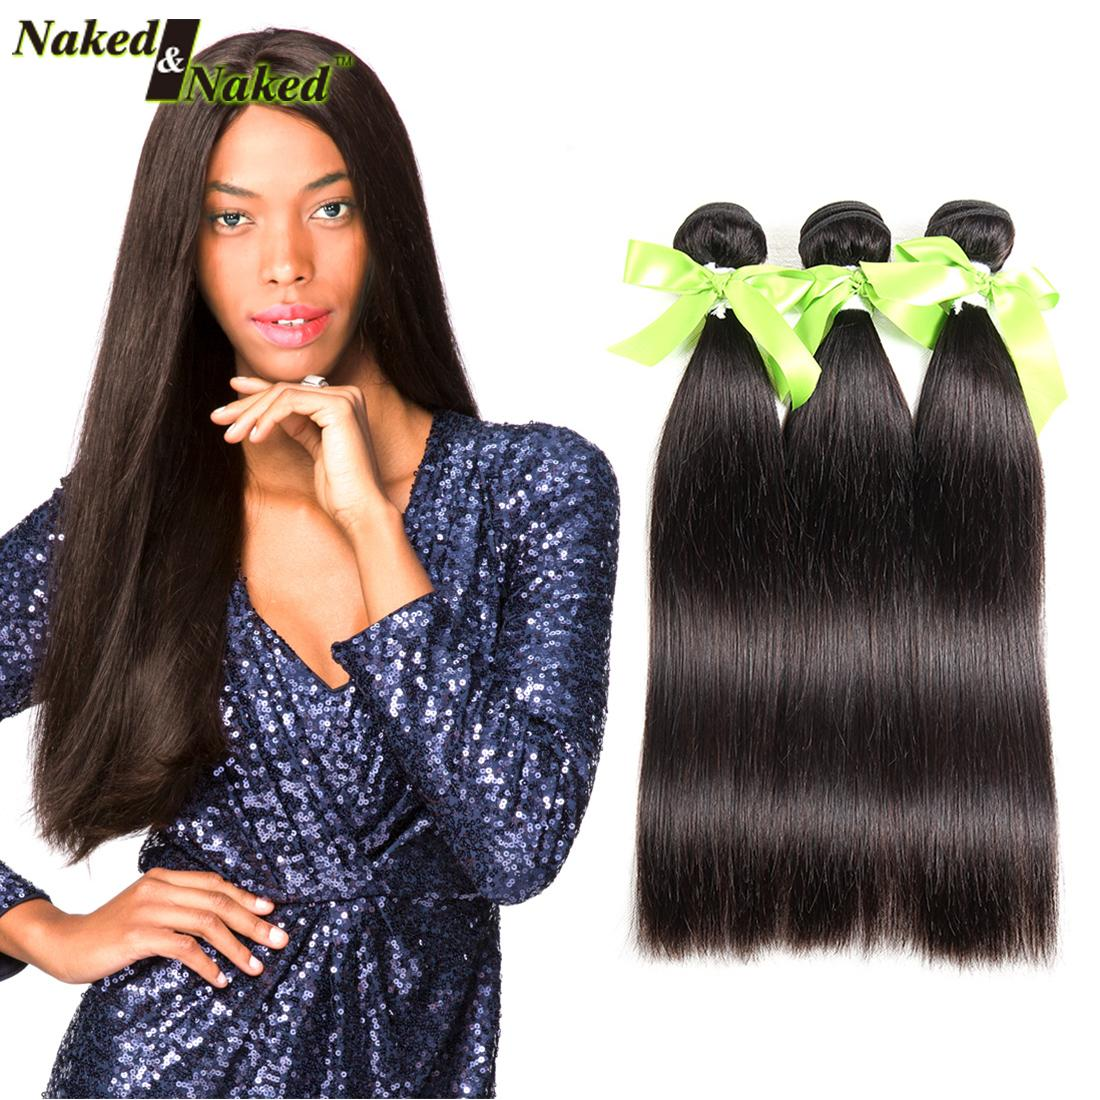 Dressmaker Silky Straight Human Hair Weave Virgin Human Hair